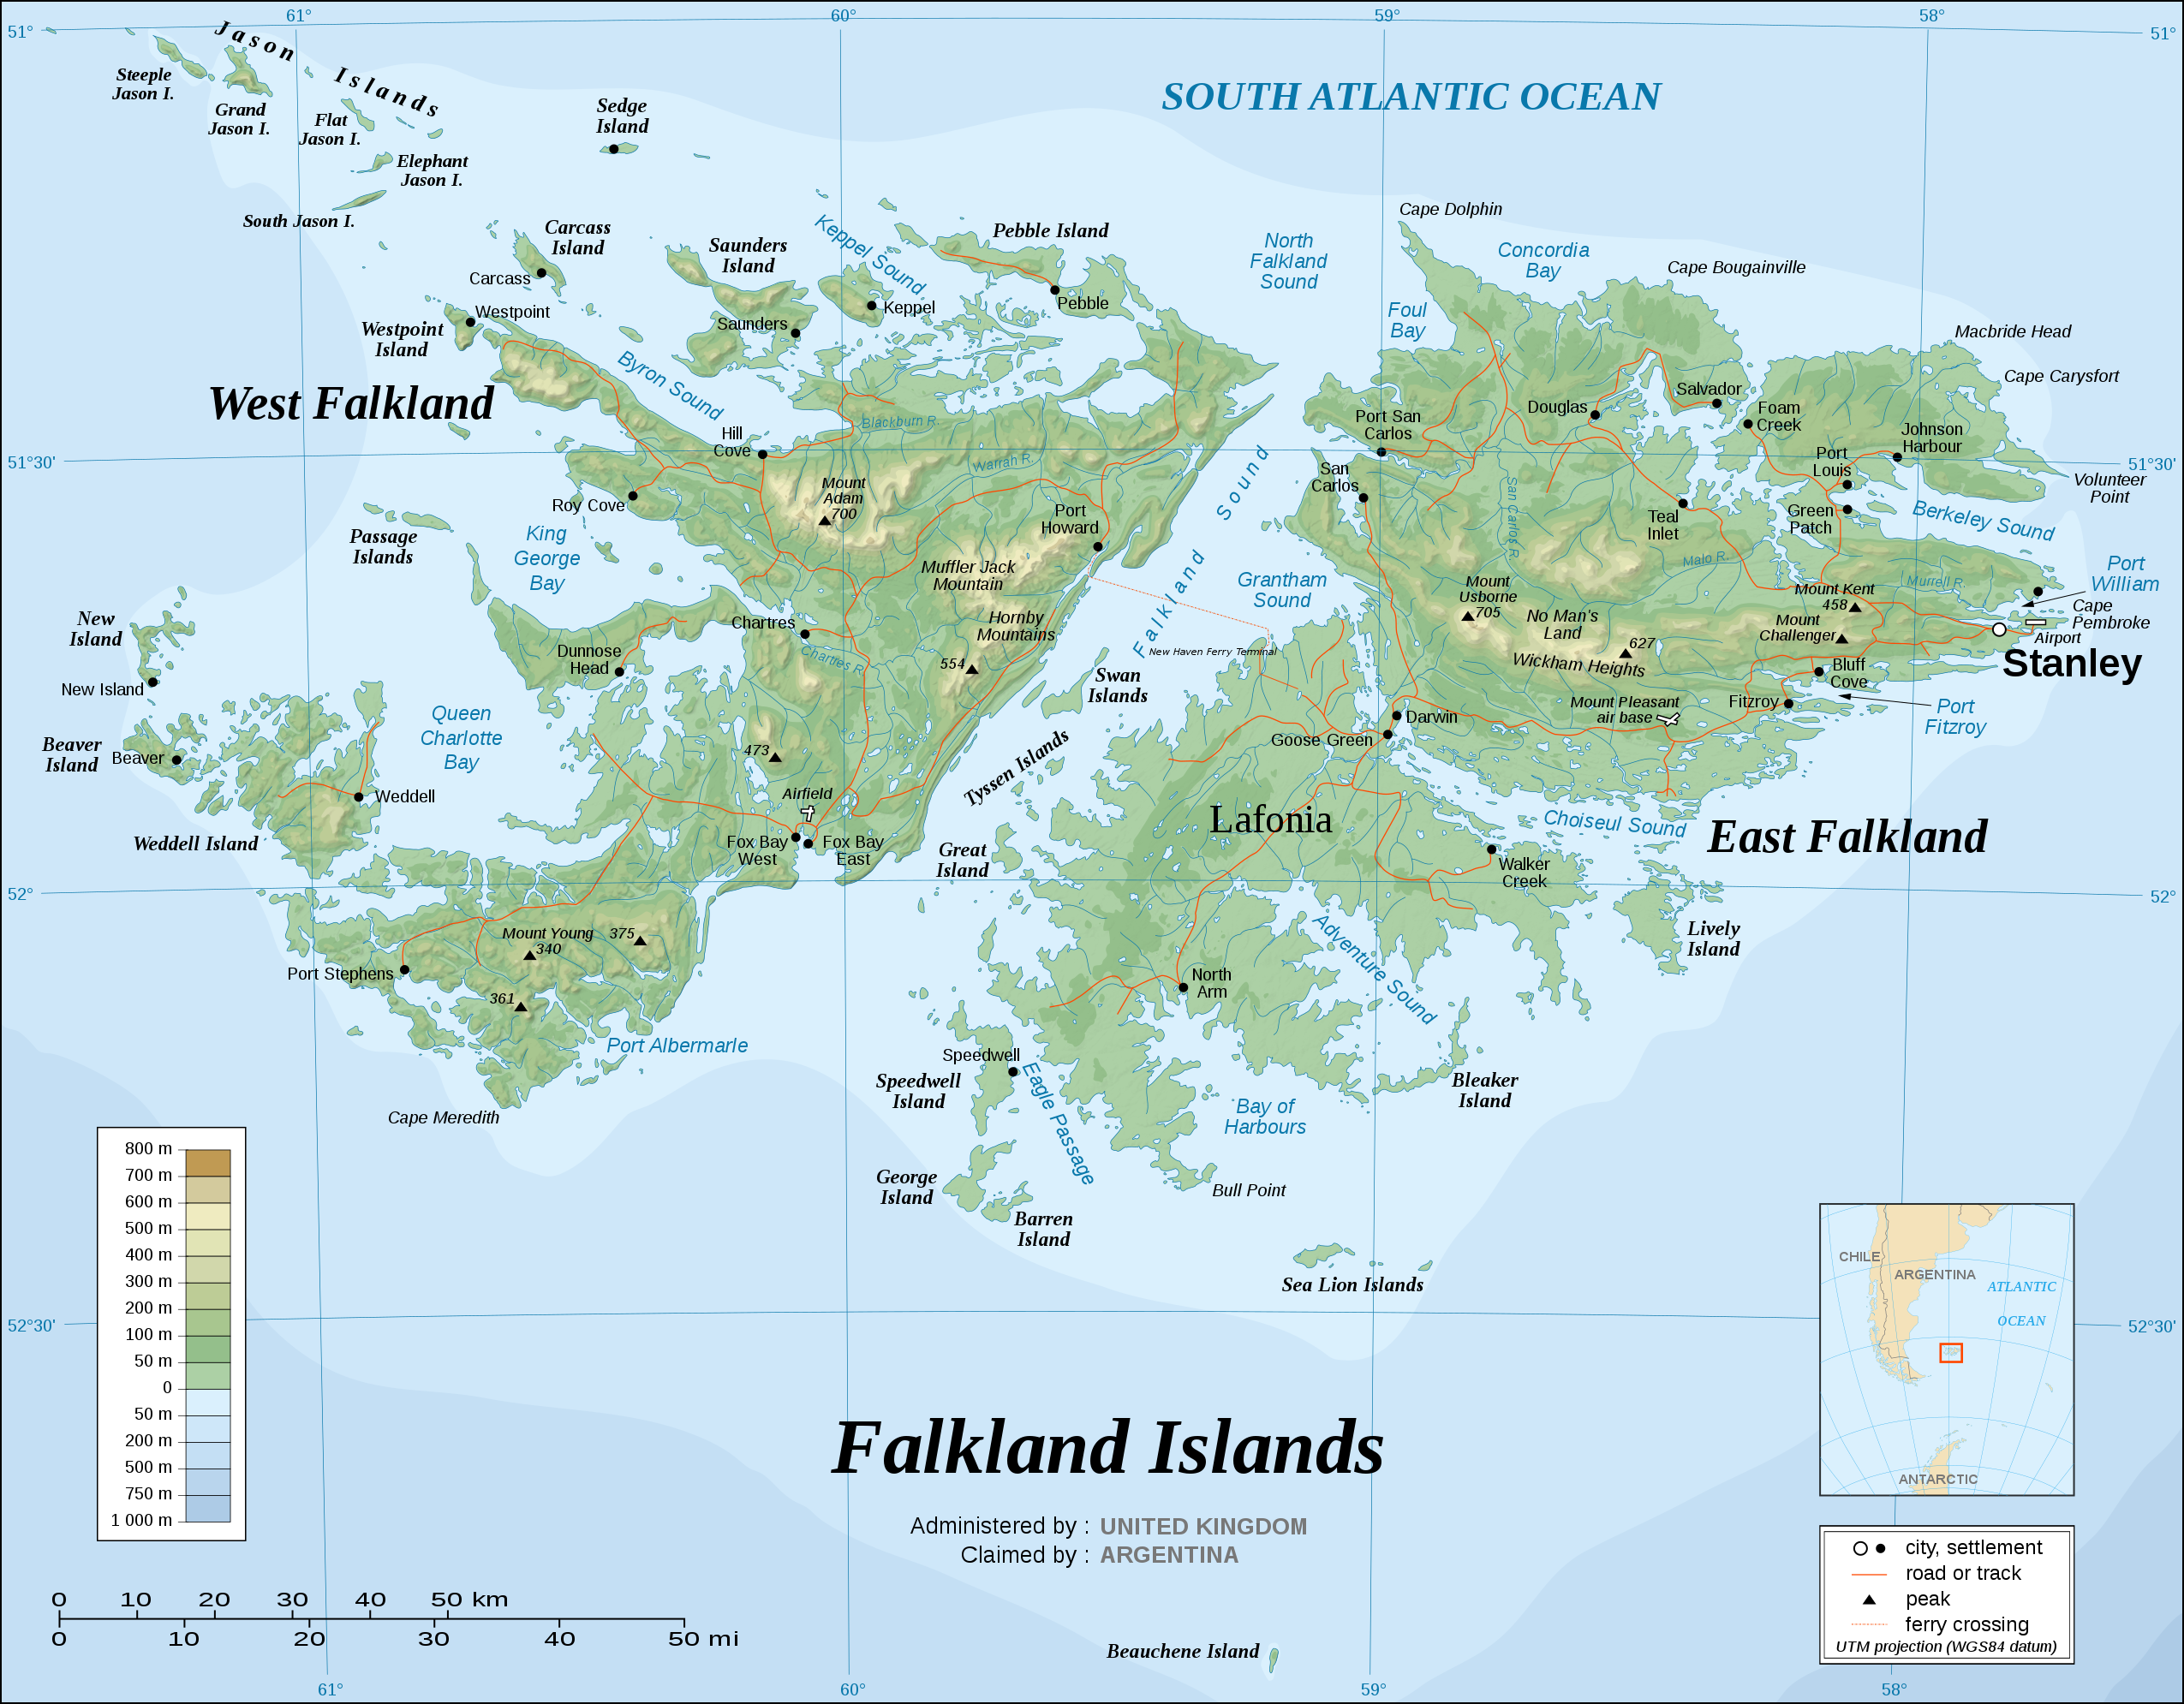 Topographic map of the Falkland Islands